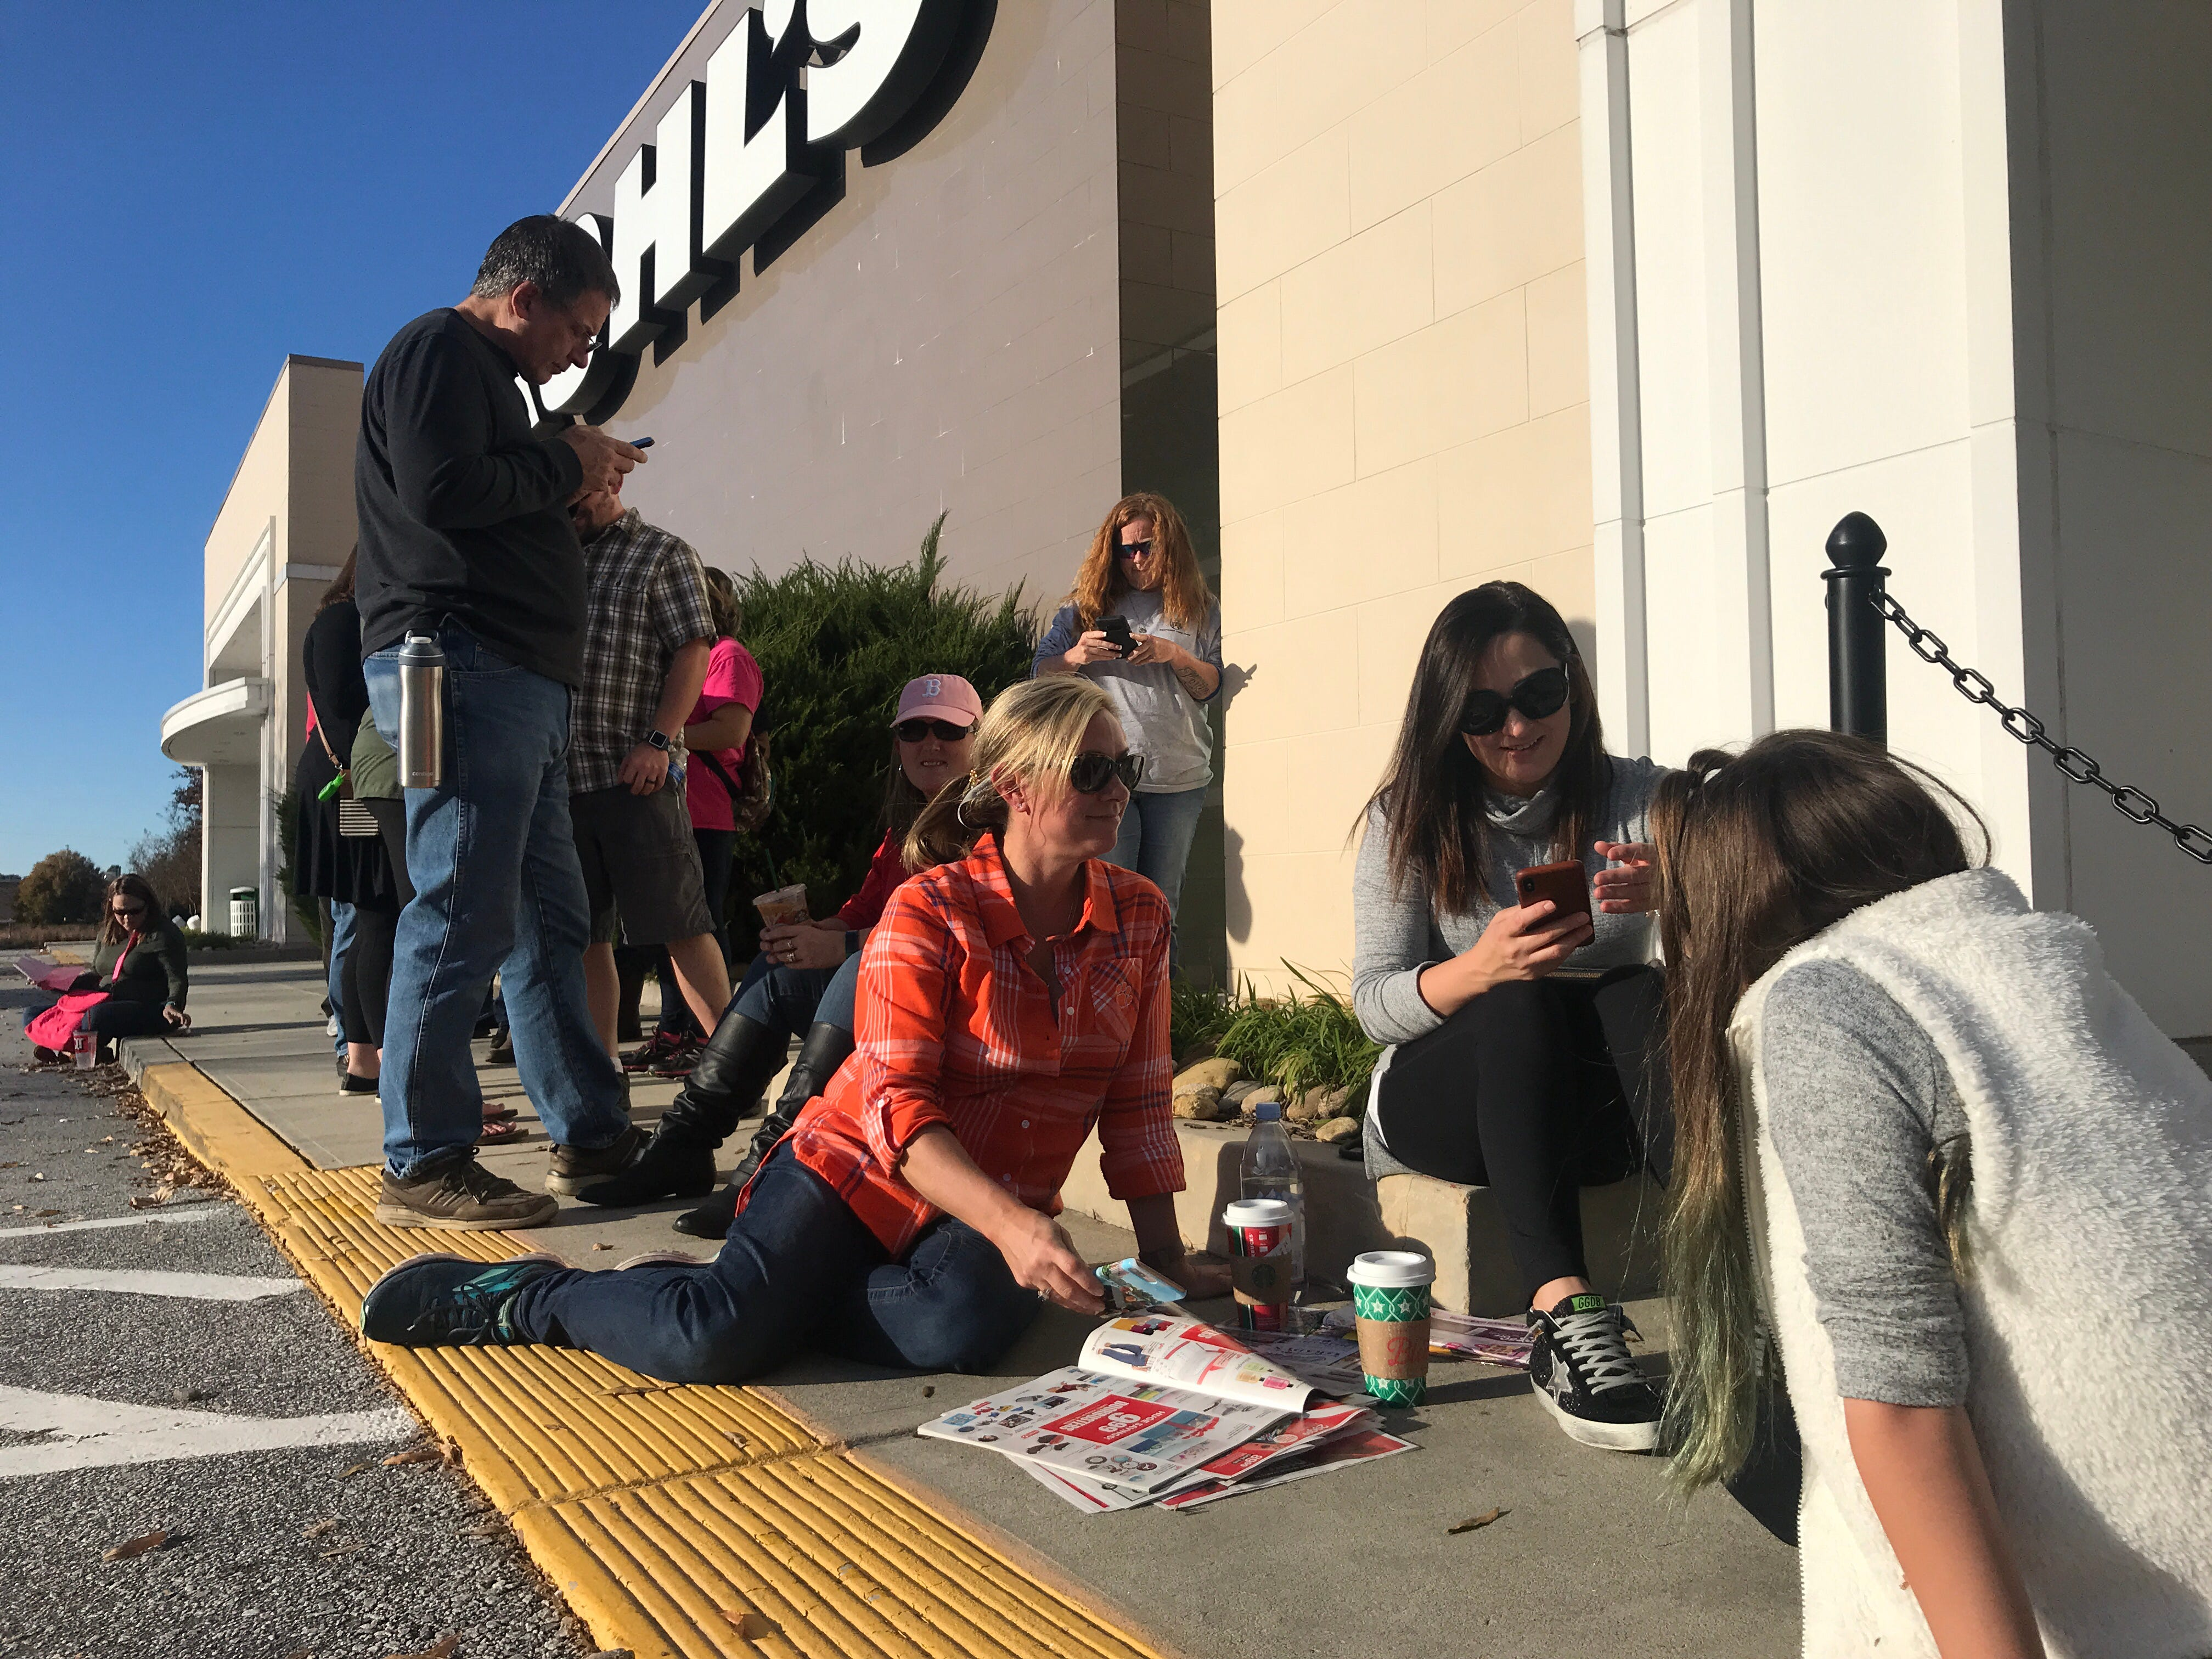 From left, Kohl's Black Friday Thanksgiving Day shoppers Sunny Davis, Victoria Bonnette, and daughter Lilah Bonnette all of Anderson wait for the 5 pm opening looking through newspaper ads.